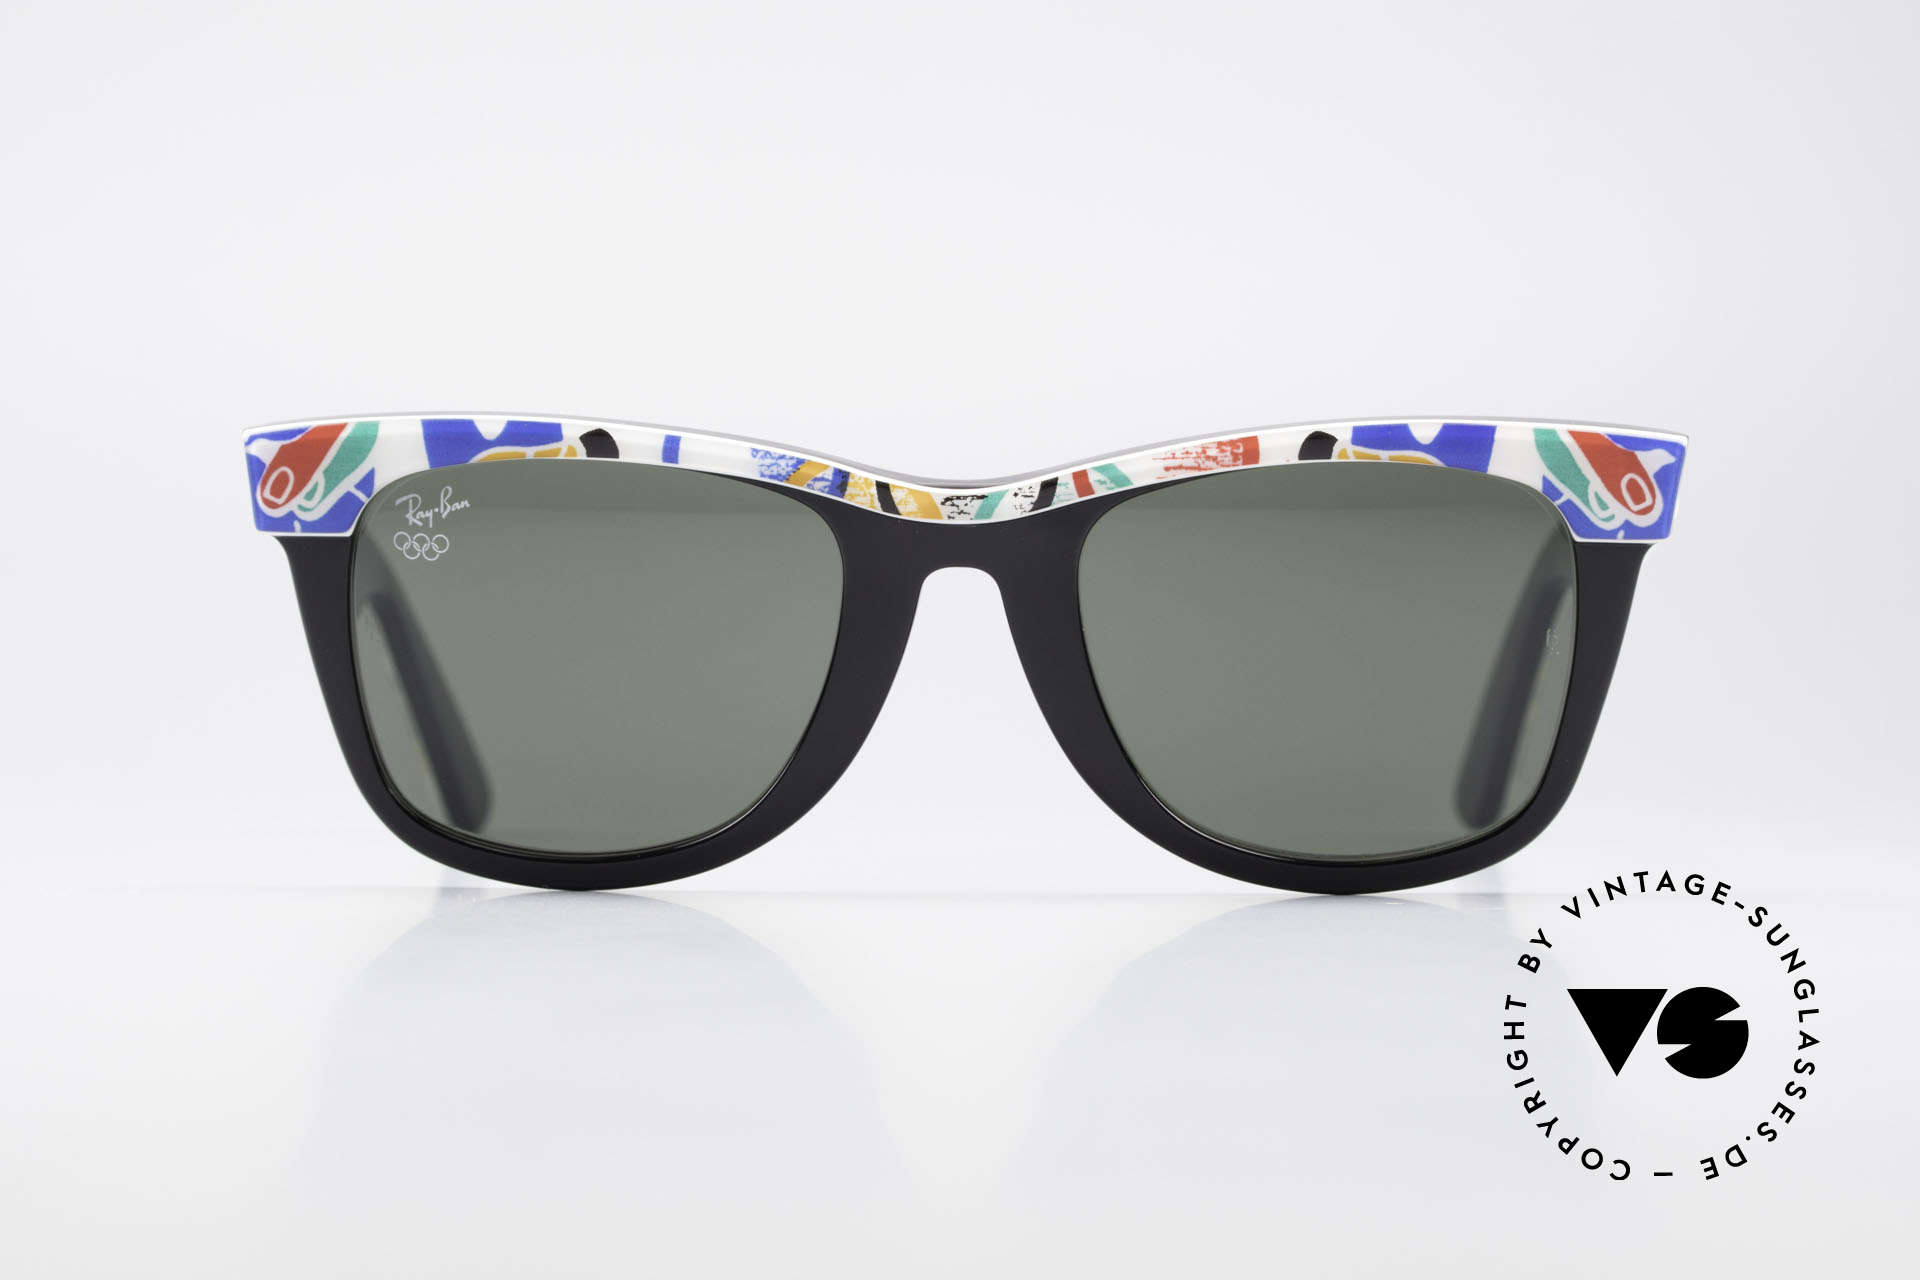 Ray Ban Wayfarer I Olympic Games Barcelona, rare Olympia Series - sports edition 'Barcelona 1992', Made for Men and Women